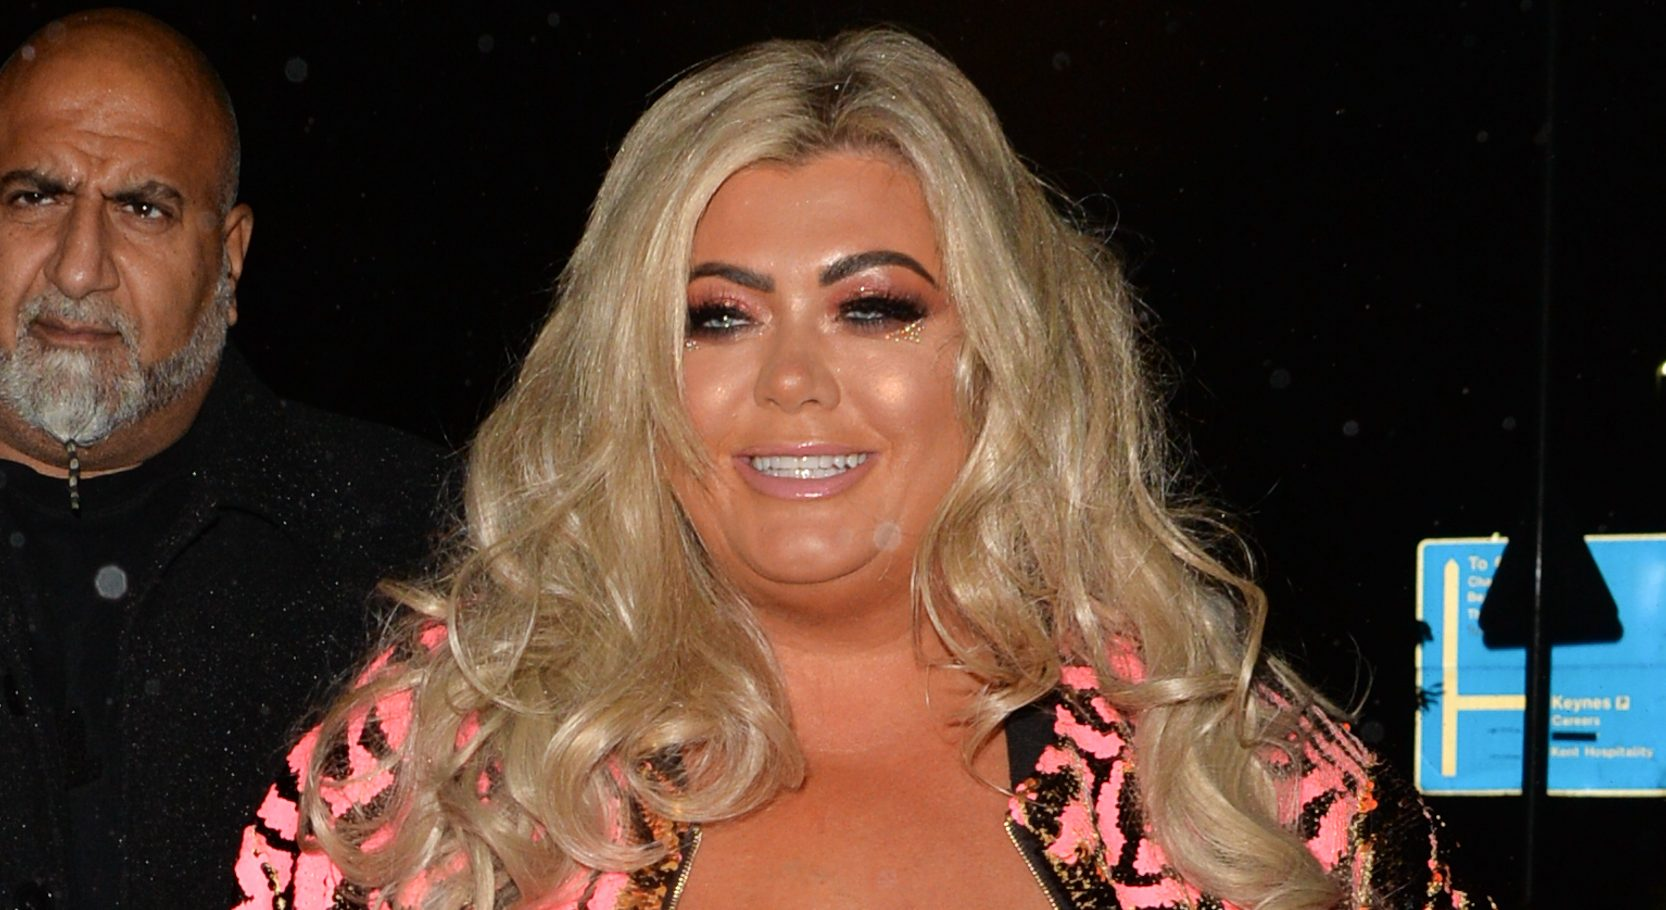 Gemma Collins 'goes low-key' as she covers up to avoid attention during shopping spree